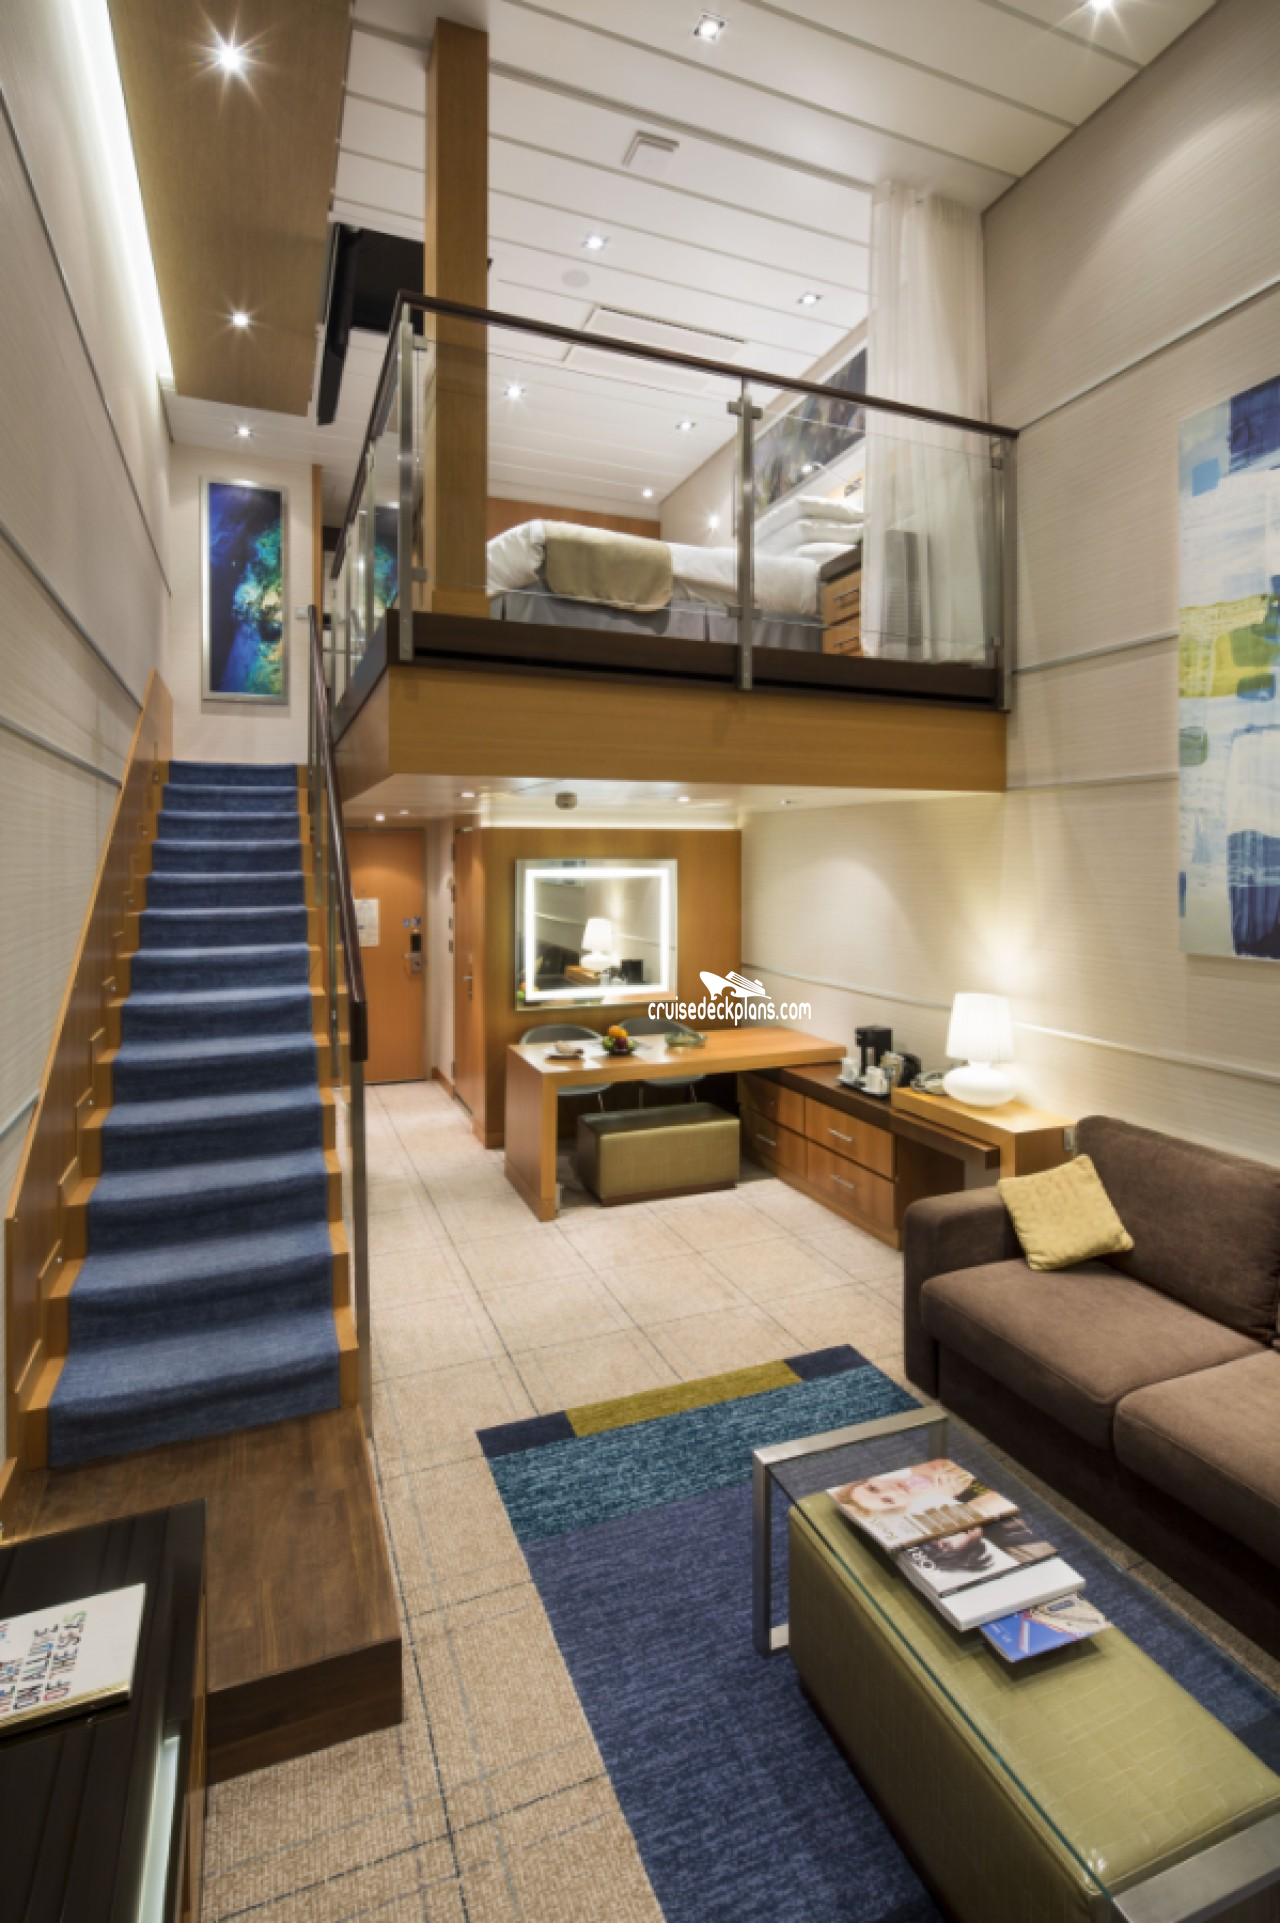 Allure Of The Seas Deck Plans Diagrams Pictures Video